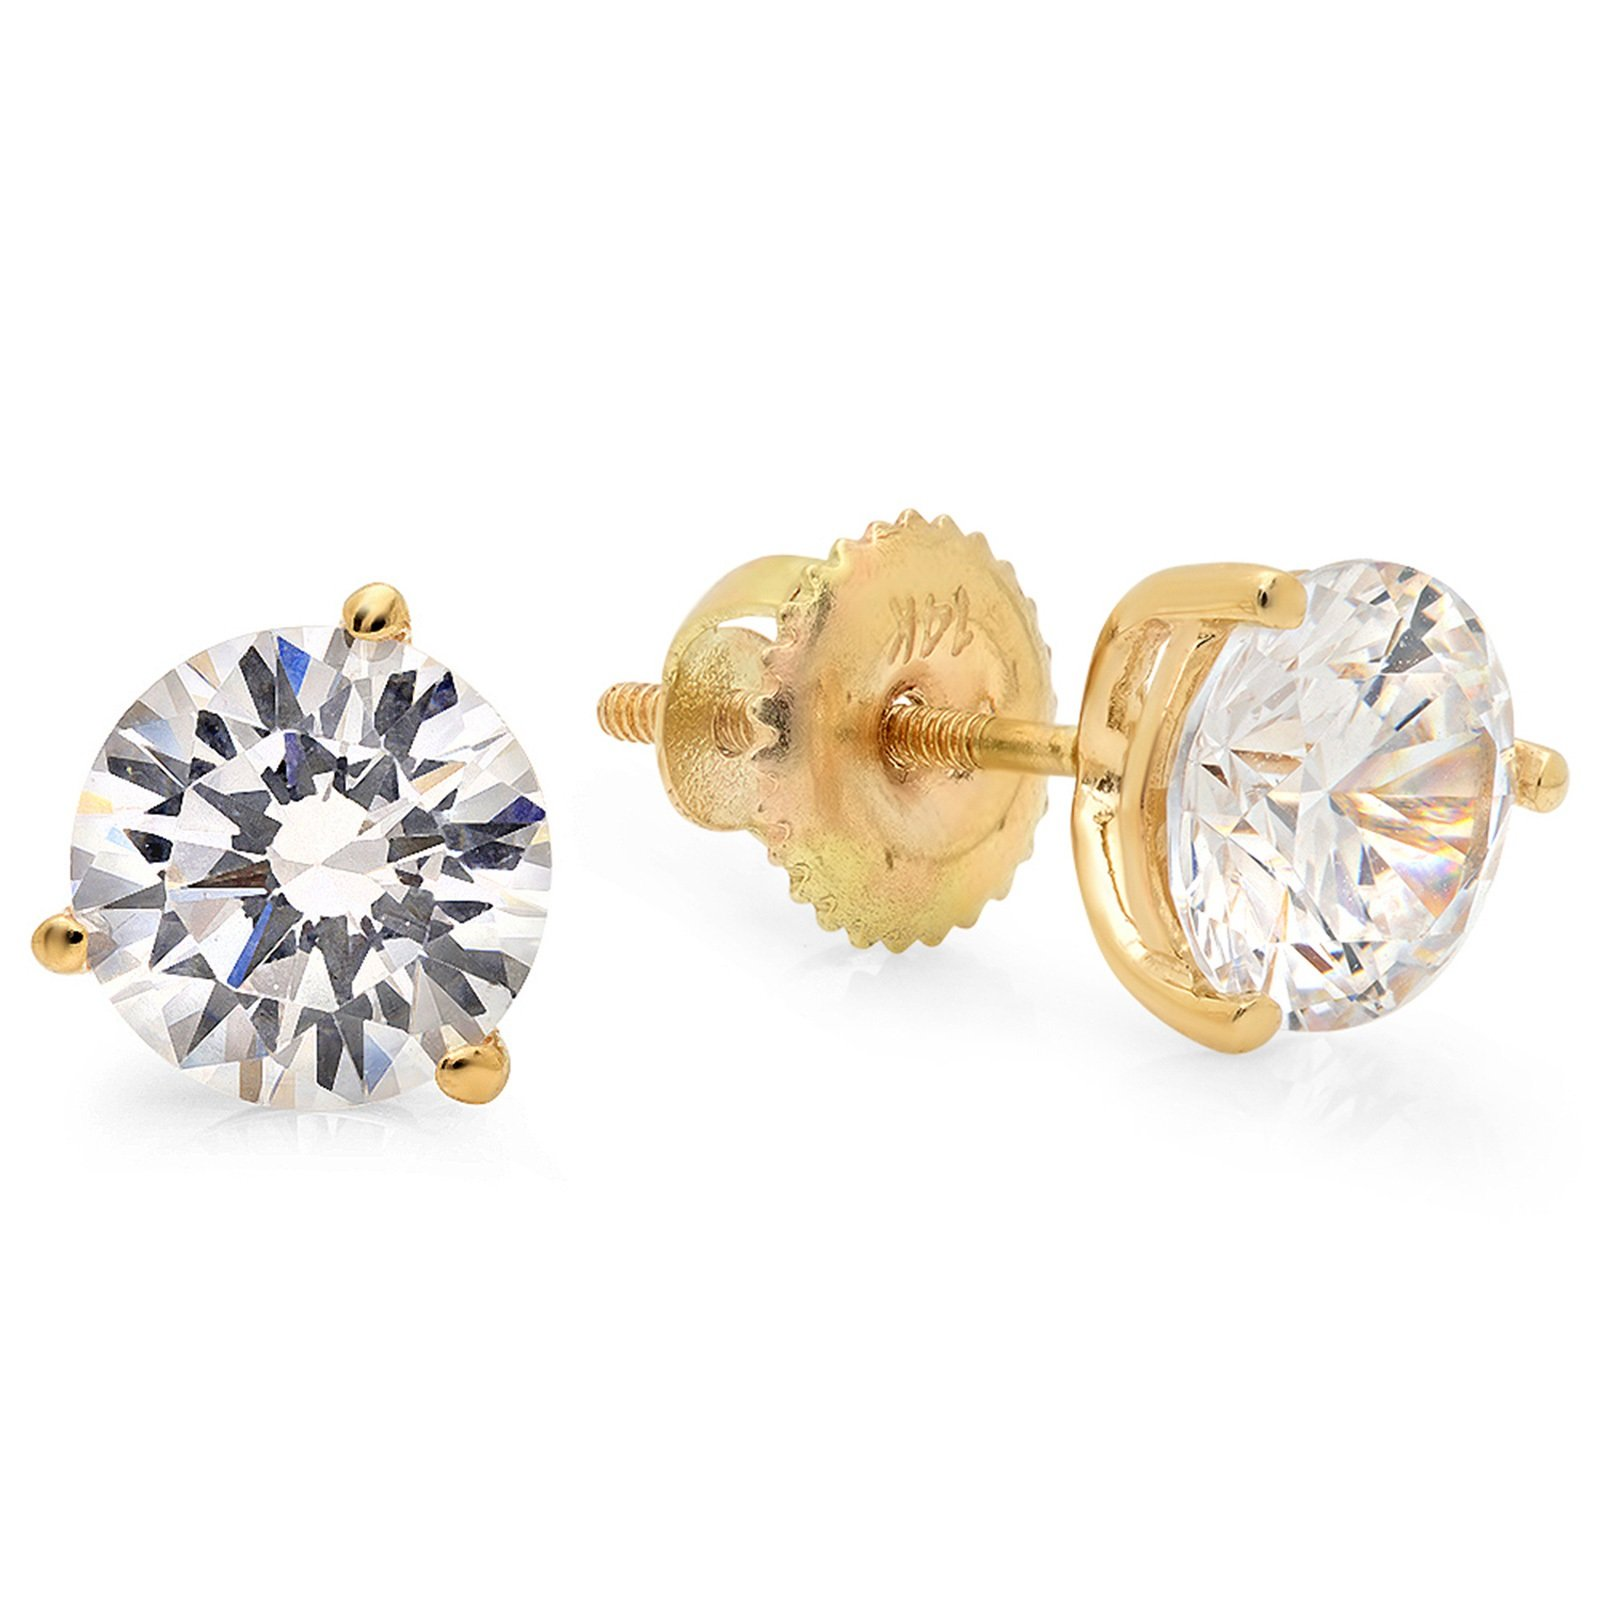 2.20 CT Round Cut Simulated Diamond Solitaire Martini Style Stud Earrings in 14k Yellow Gold Screw Back